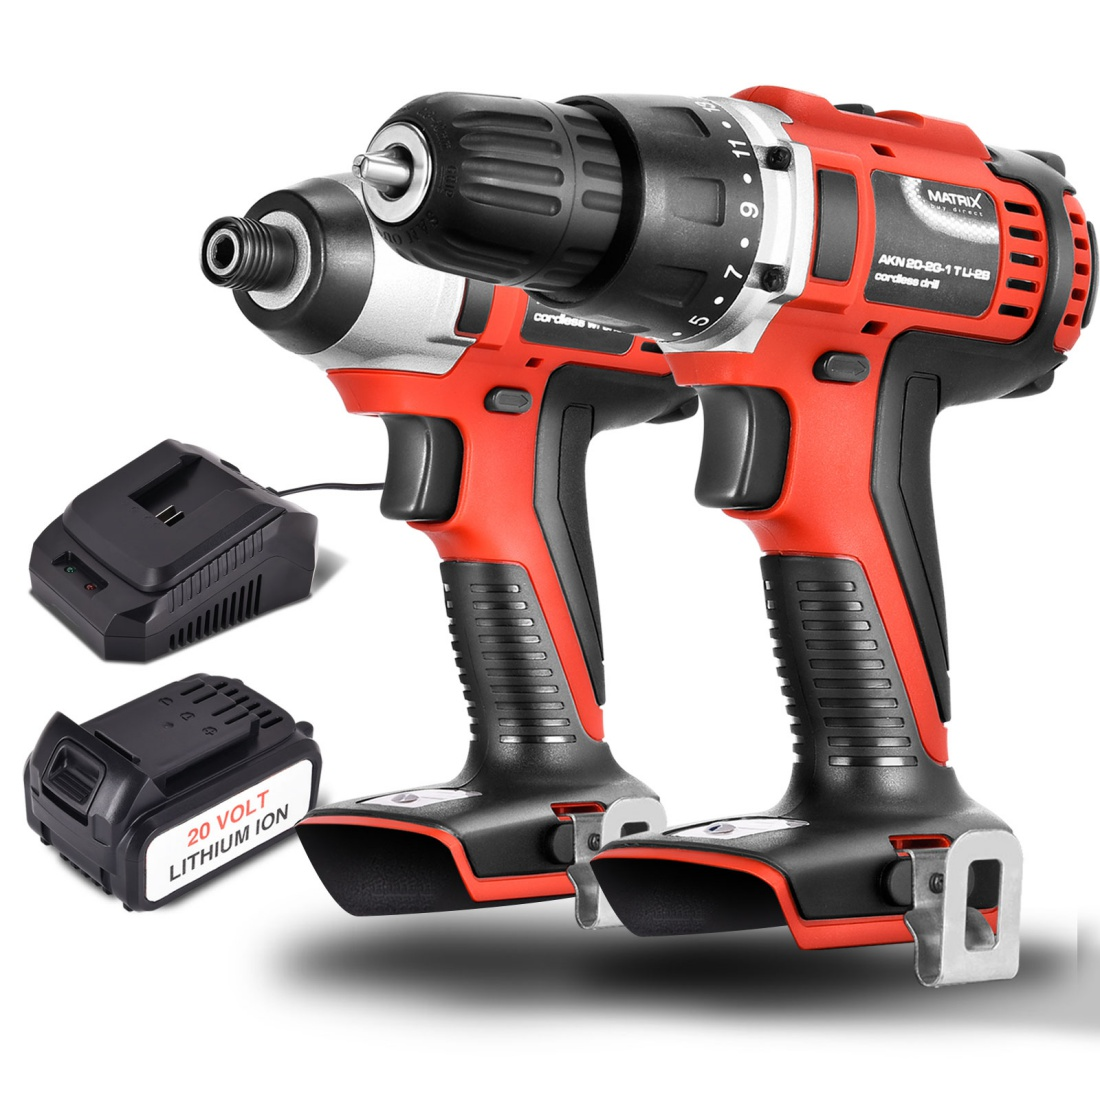 Matrix 20V Cordless Drill & Impact Driver Li-Ion Lithium Electric Power Tool Set